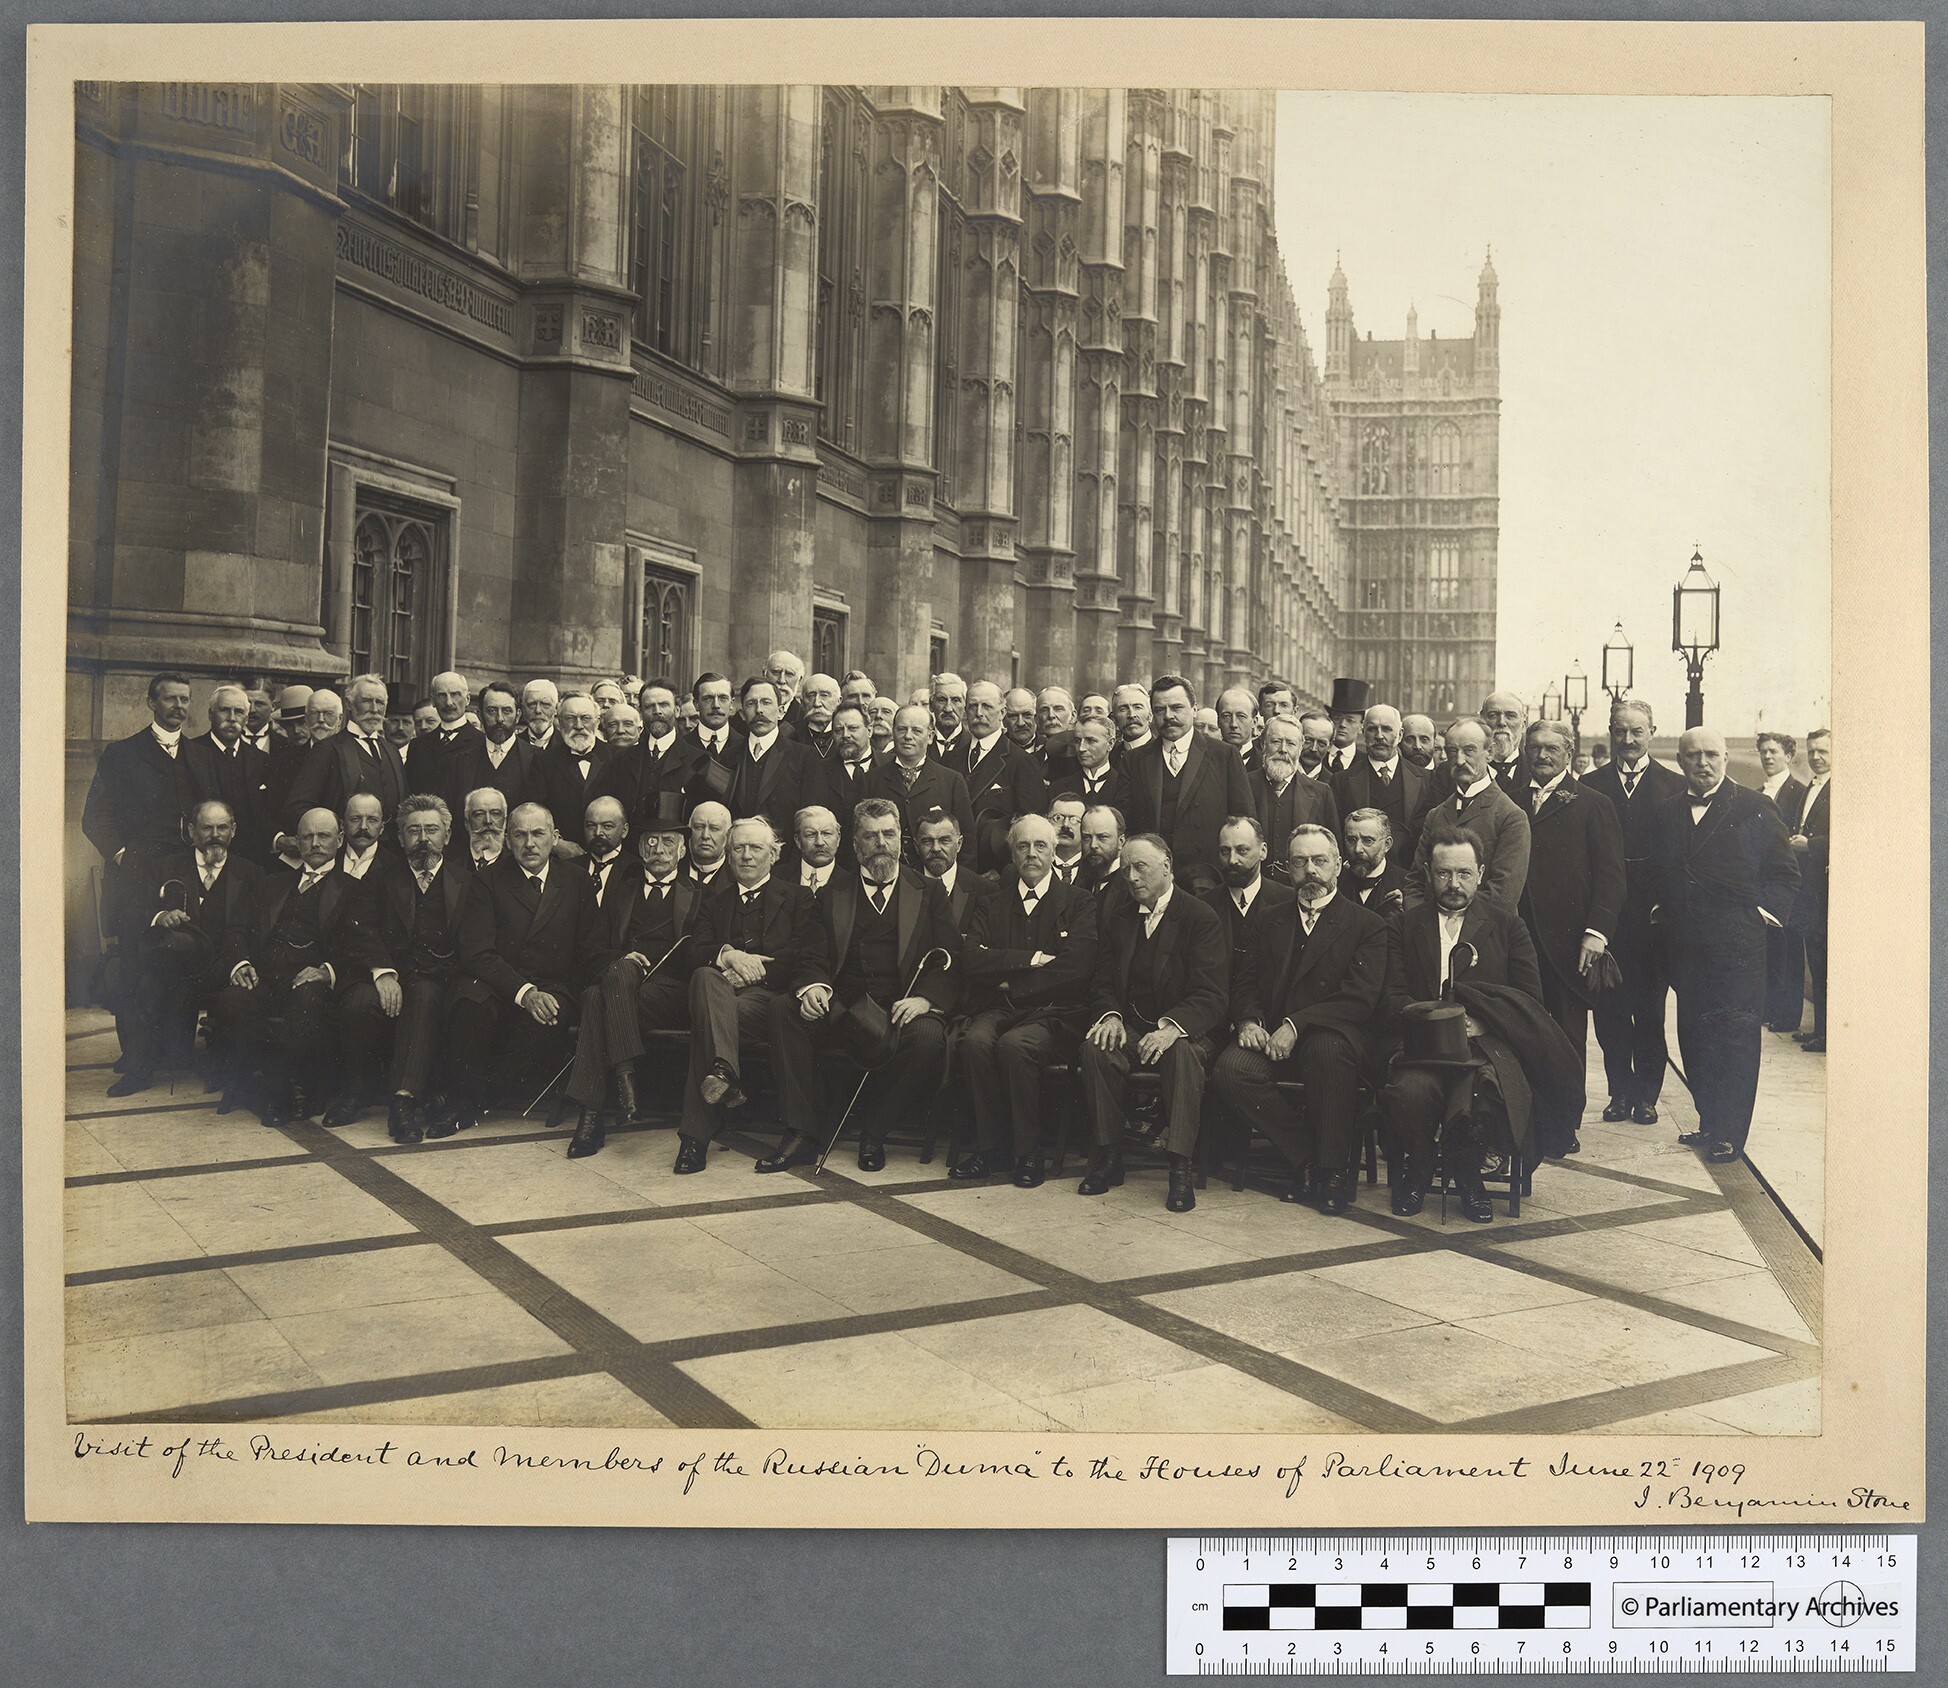 Sir Benjamin Stone, photographer. (Jun. 22, 1909). Visit of the President and Members of the Russian Duma to the House of Commons of Parliament June 22nd 1909. Parliamentary Archives.